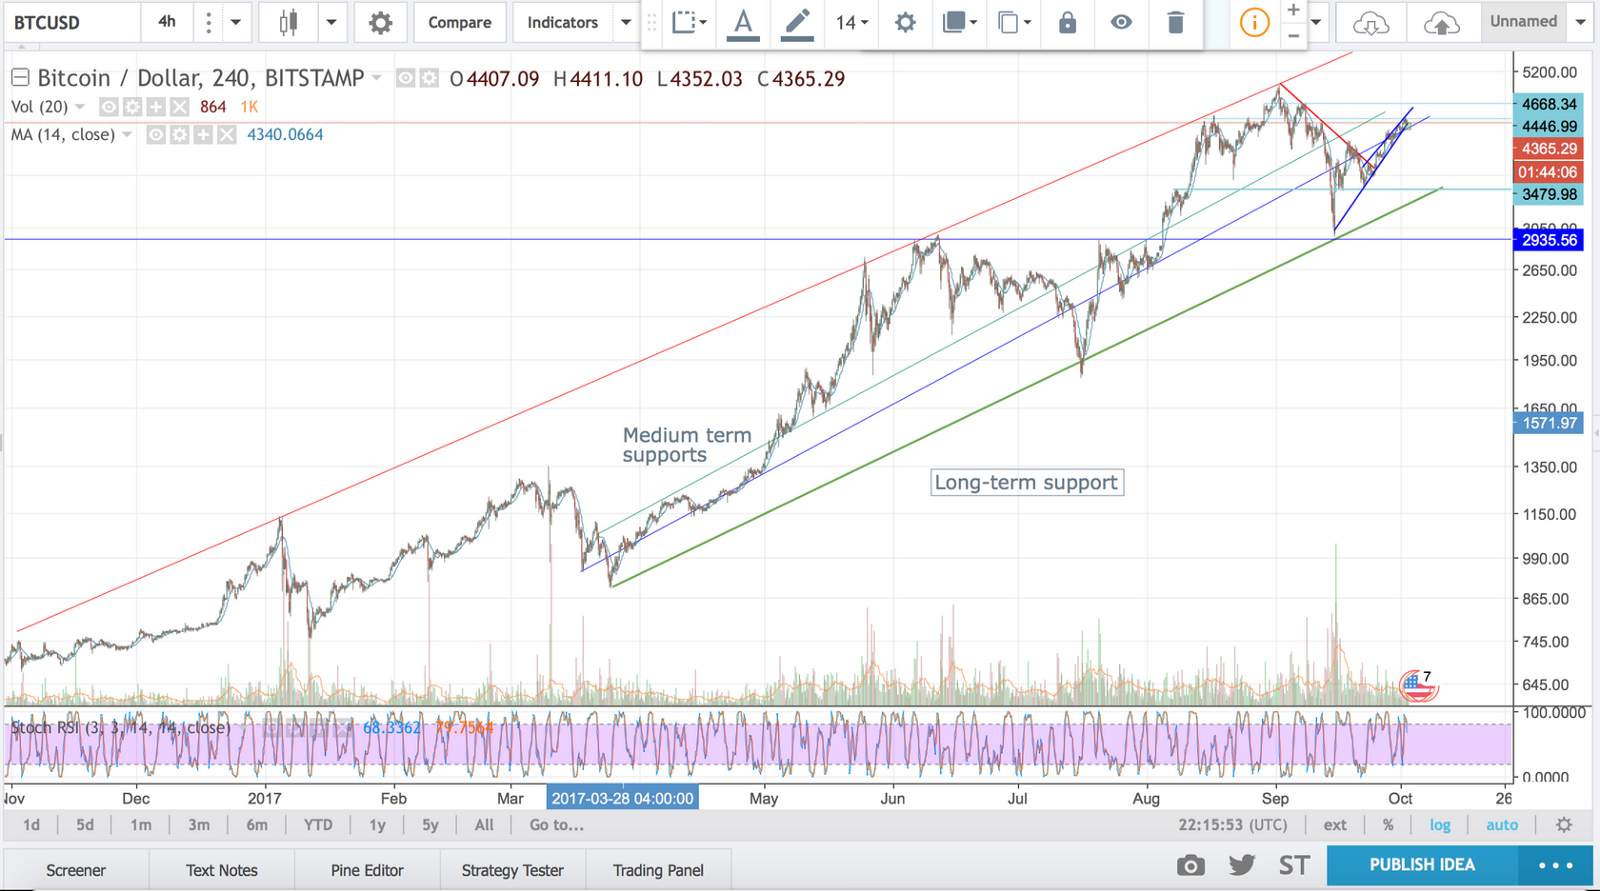 4 Hour Log Scale Btc Usd Chart